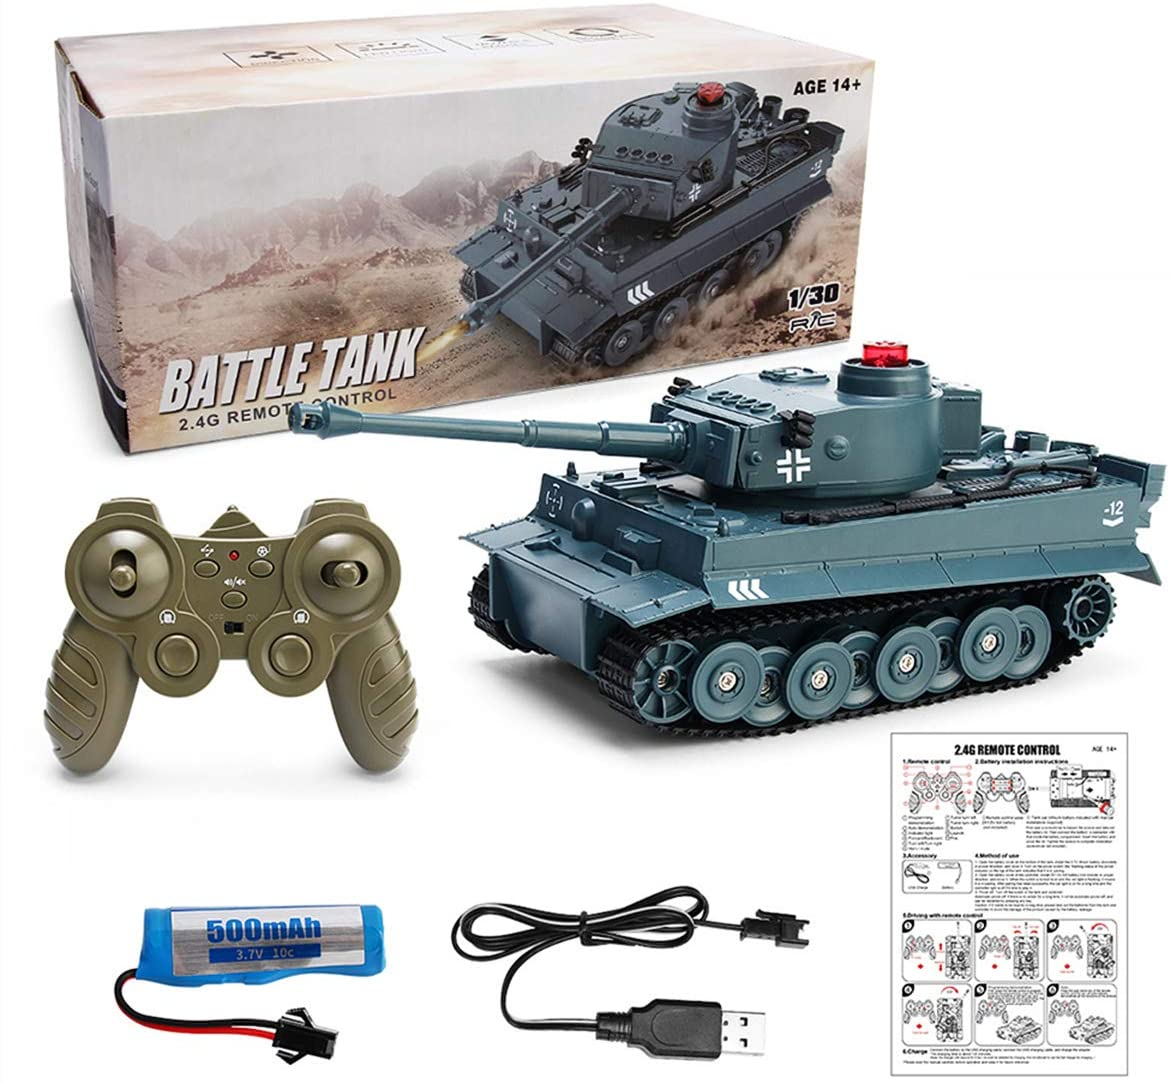 XIAOKEKE MRCOCO Rc Car Remote Control Tank Crawler Charger Remote Control Vehicle Can Launch Fired Guns to Match The Mobile Off-Road Car Children Boy Toys Remote Control Main Battle Tank Toy Gift